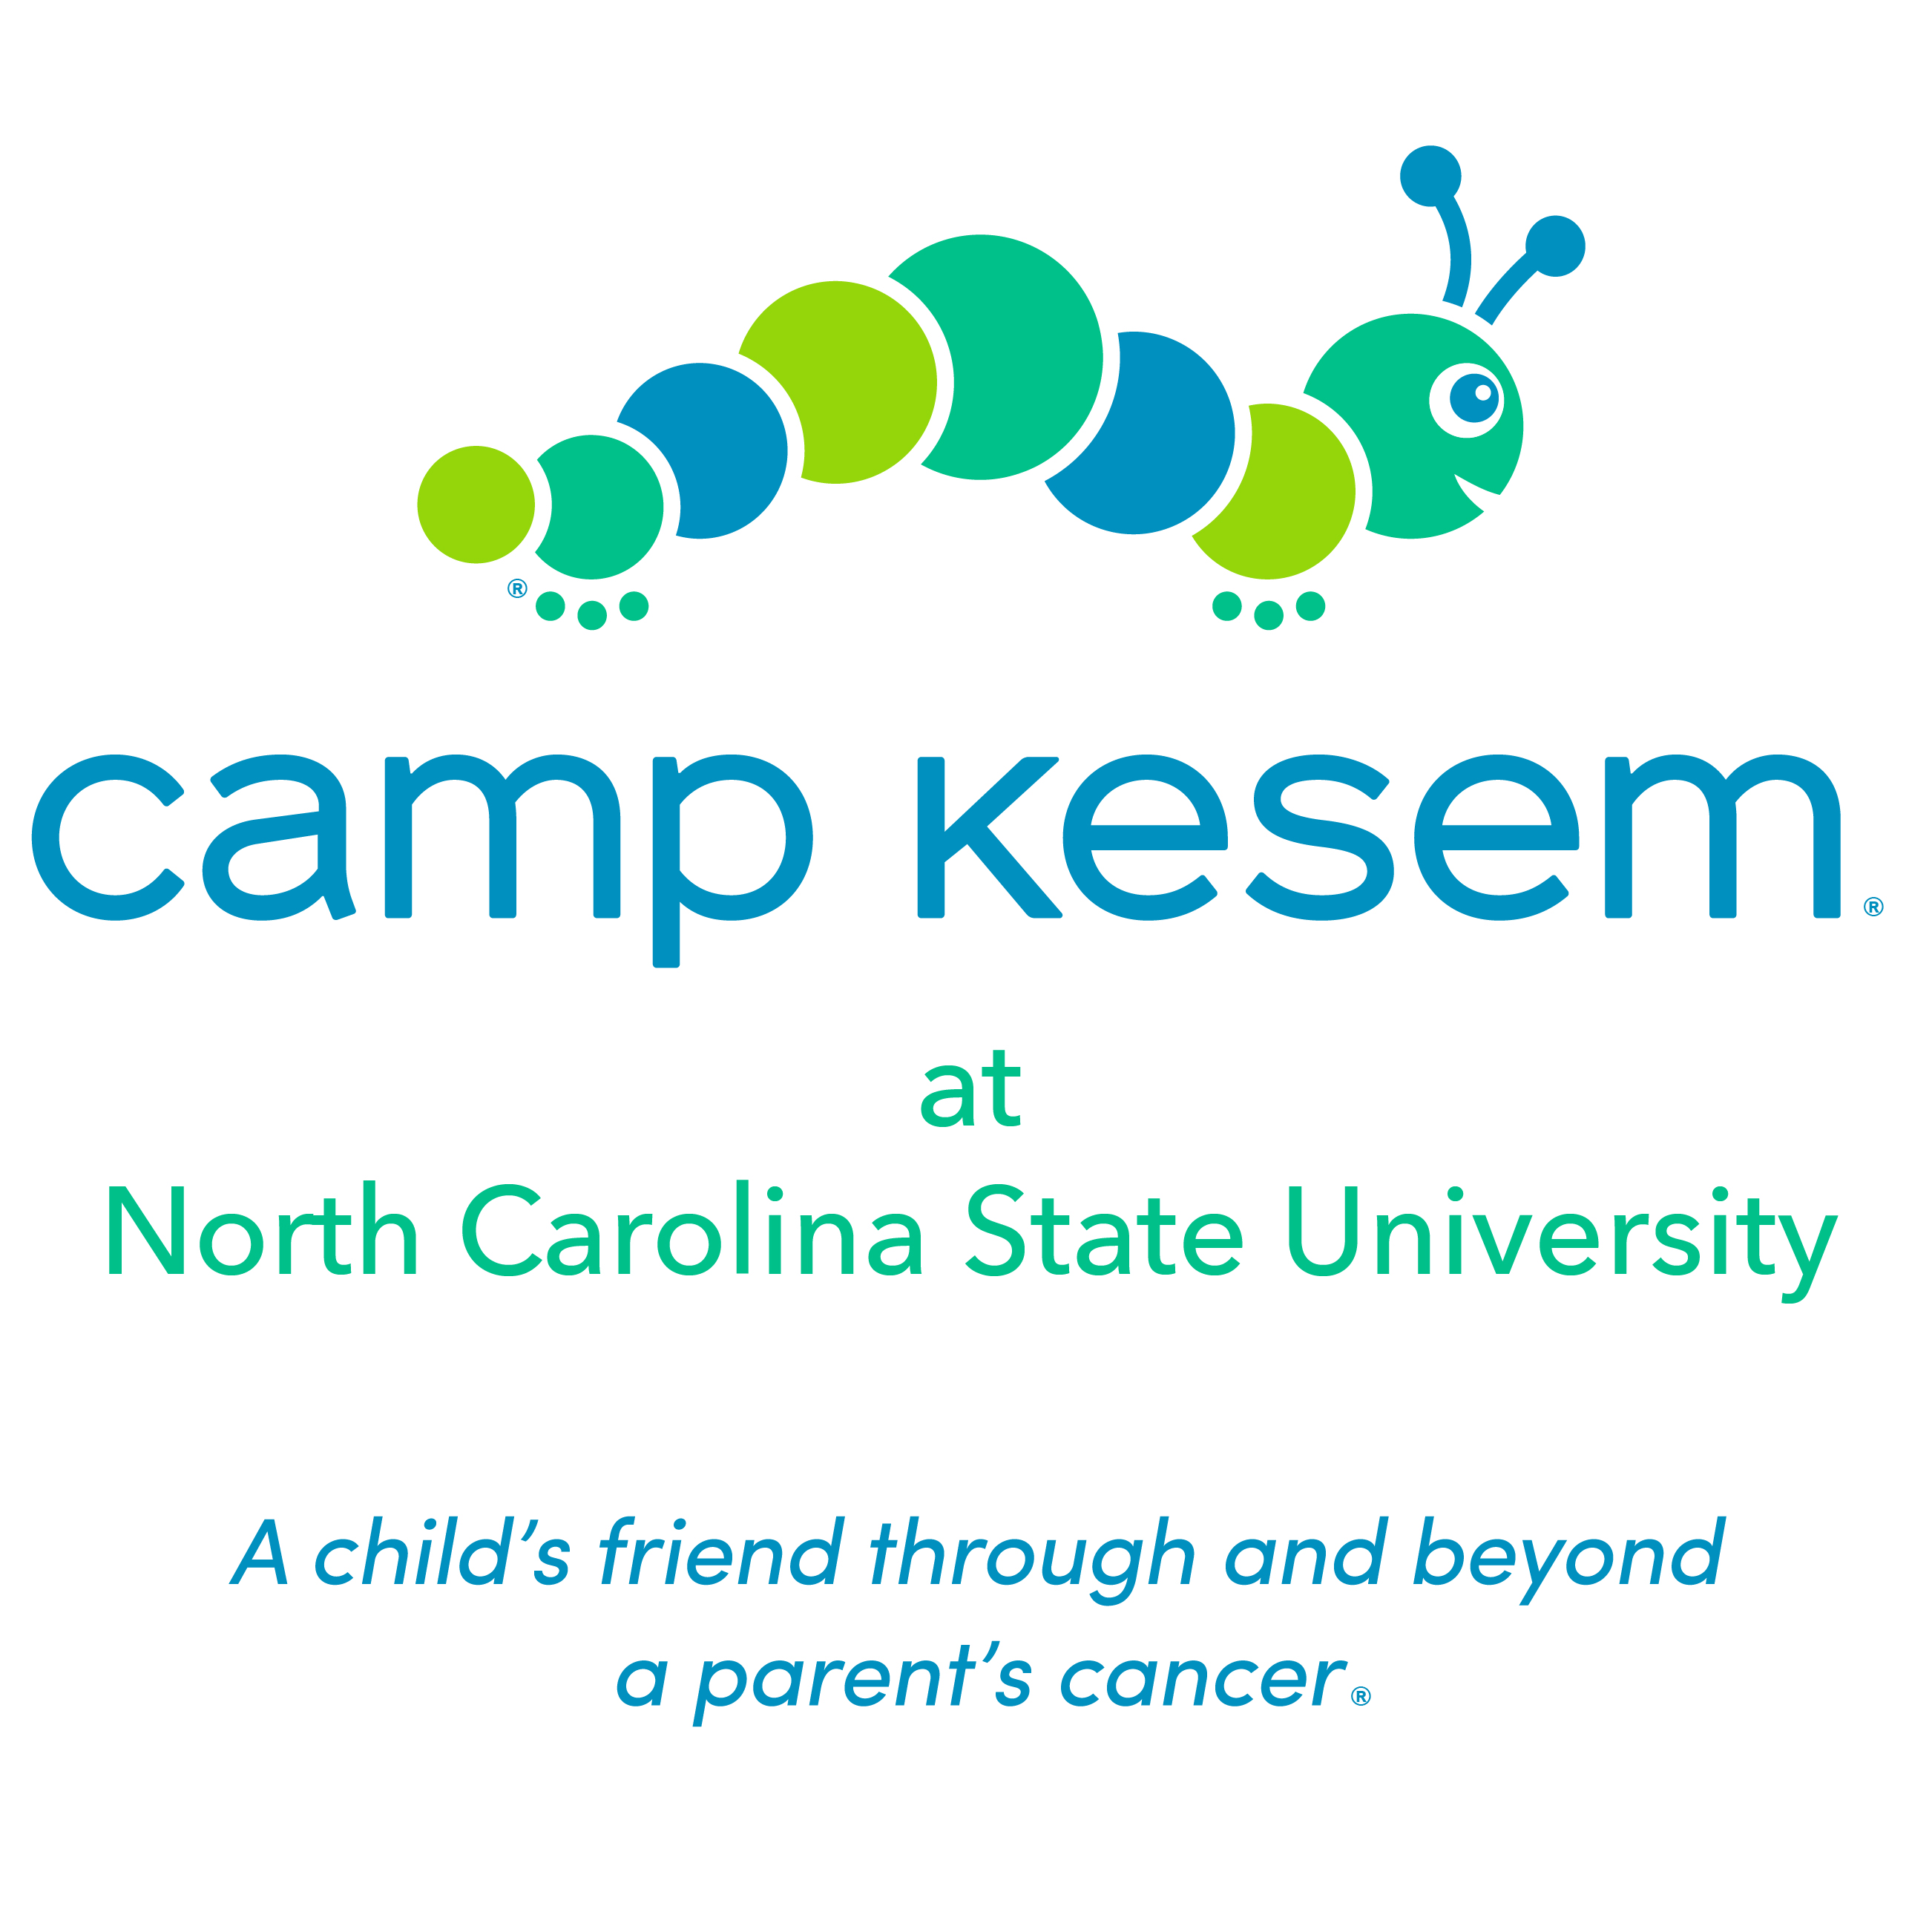 Camp Kesem at North Carolina State University